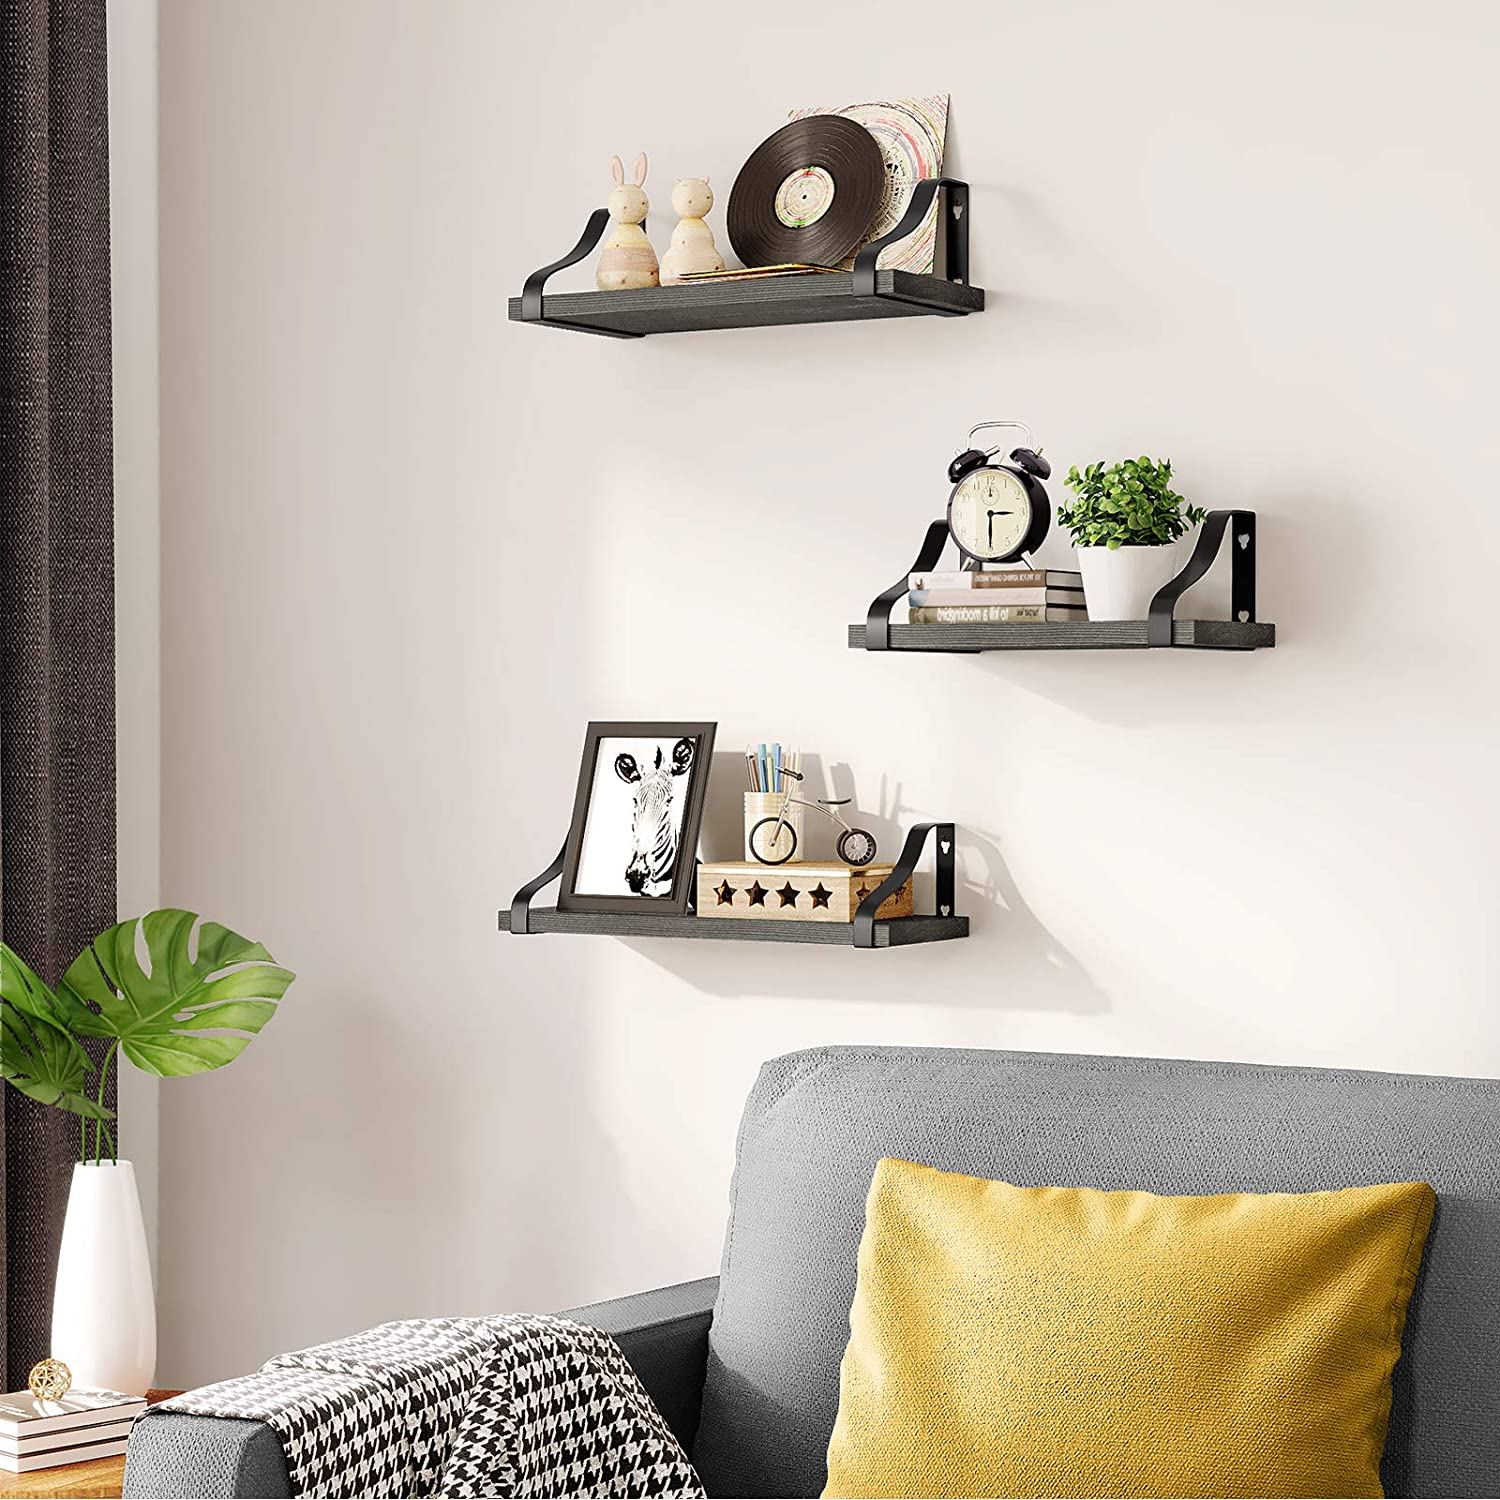 Floating Shelves for Wall, Rustic Solid Wood Floating Wall Shelf Mounted, Set of 3 Wall Hanging Shelves